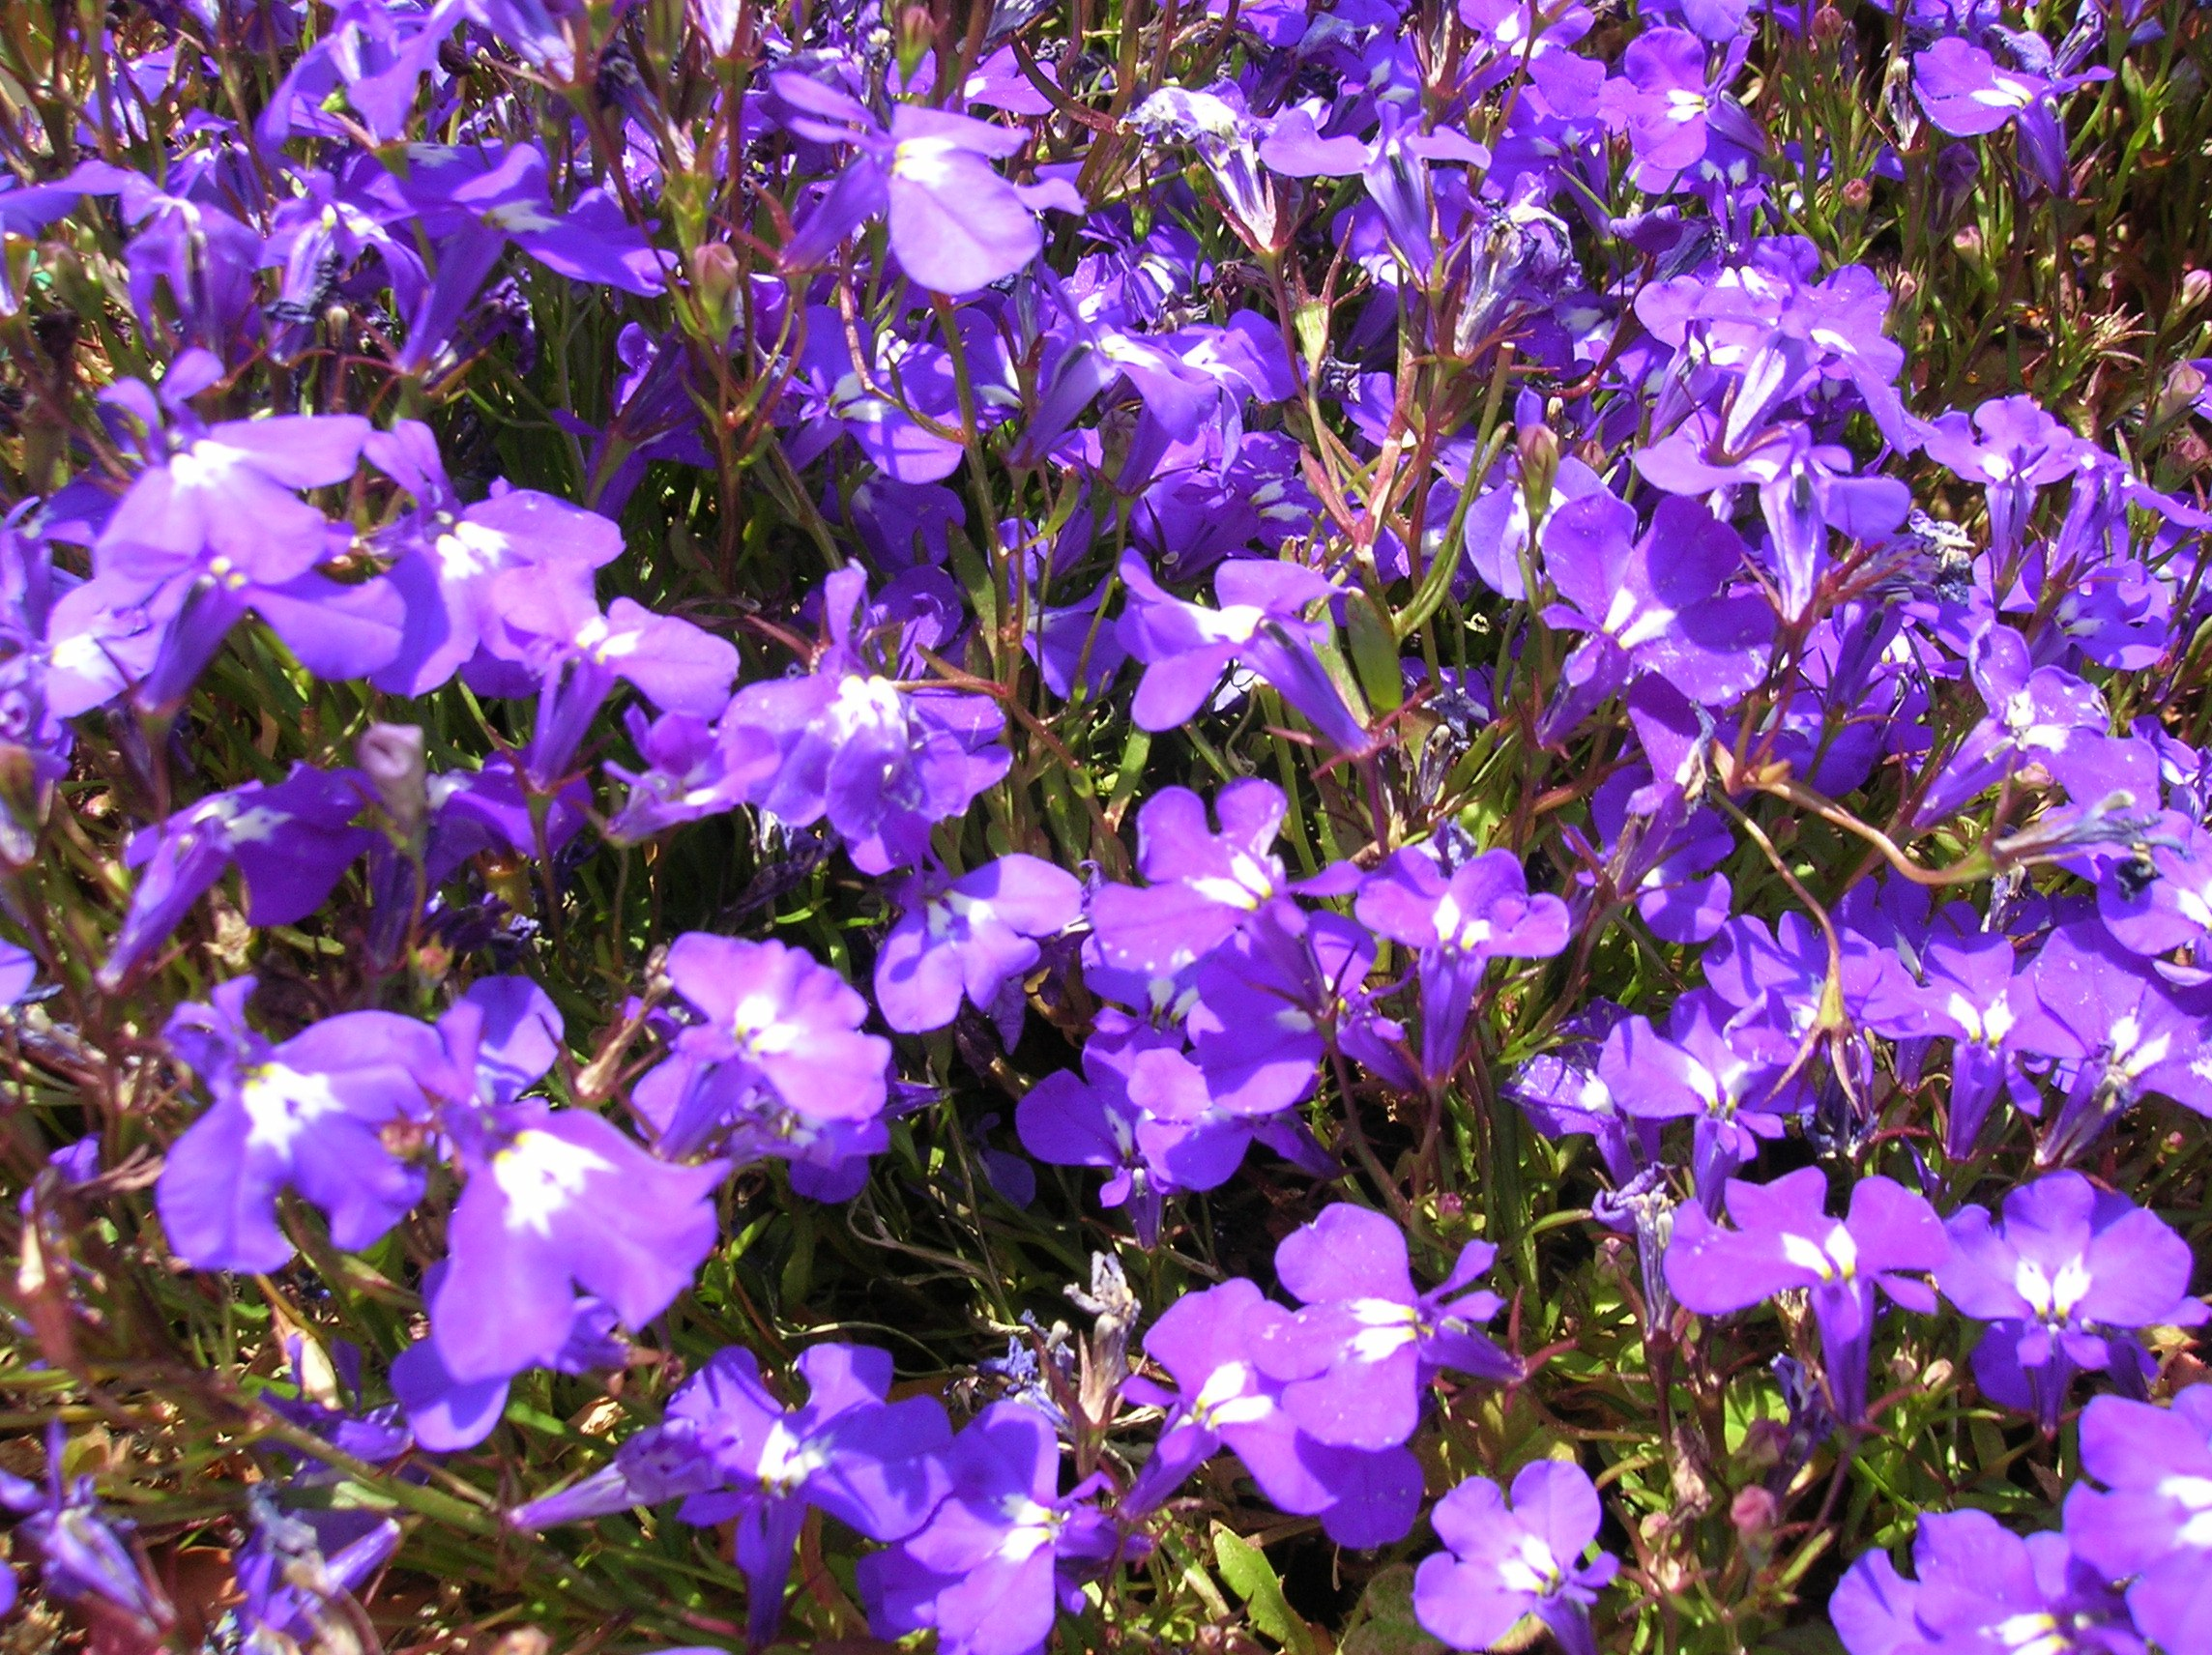 How to grow lobelia growing and caring for lobelia lobelia erinus lobelia izmirmasajfo